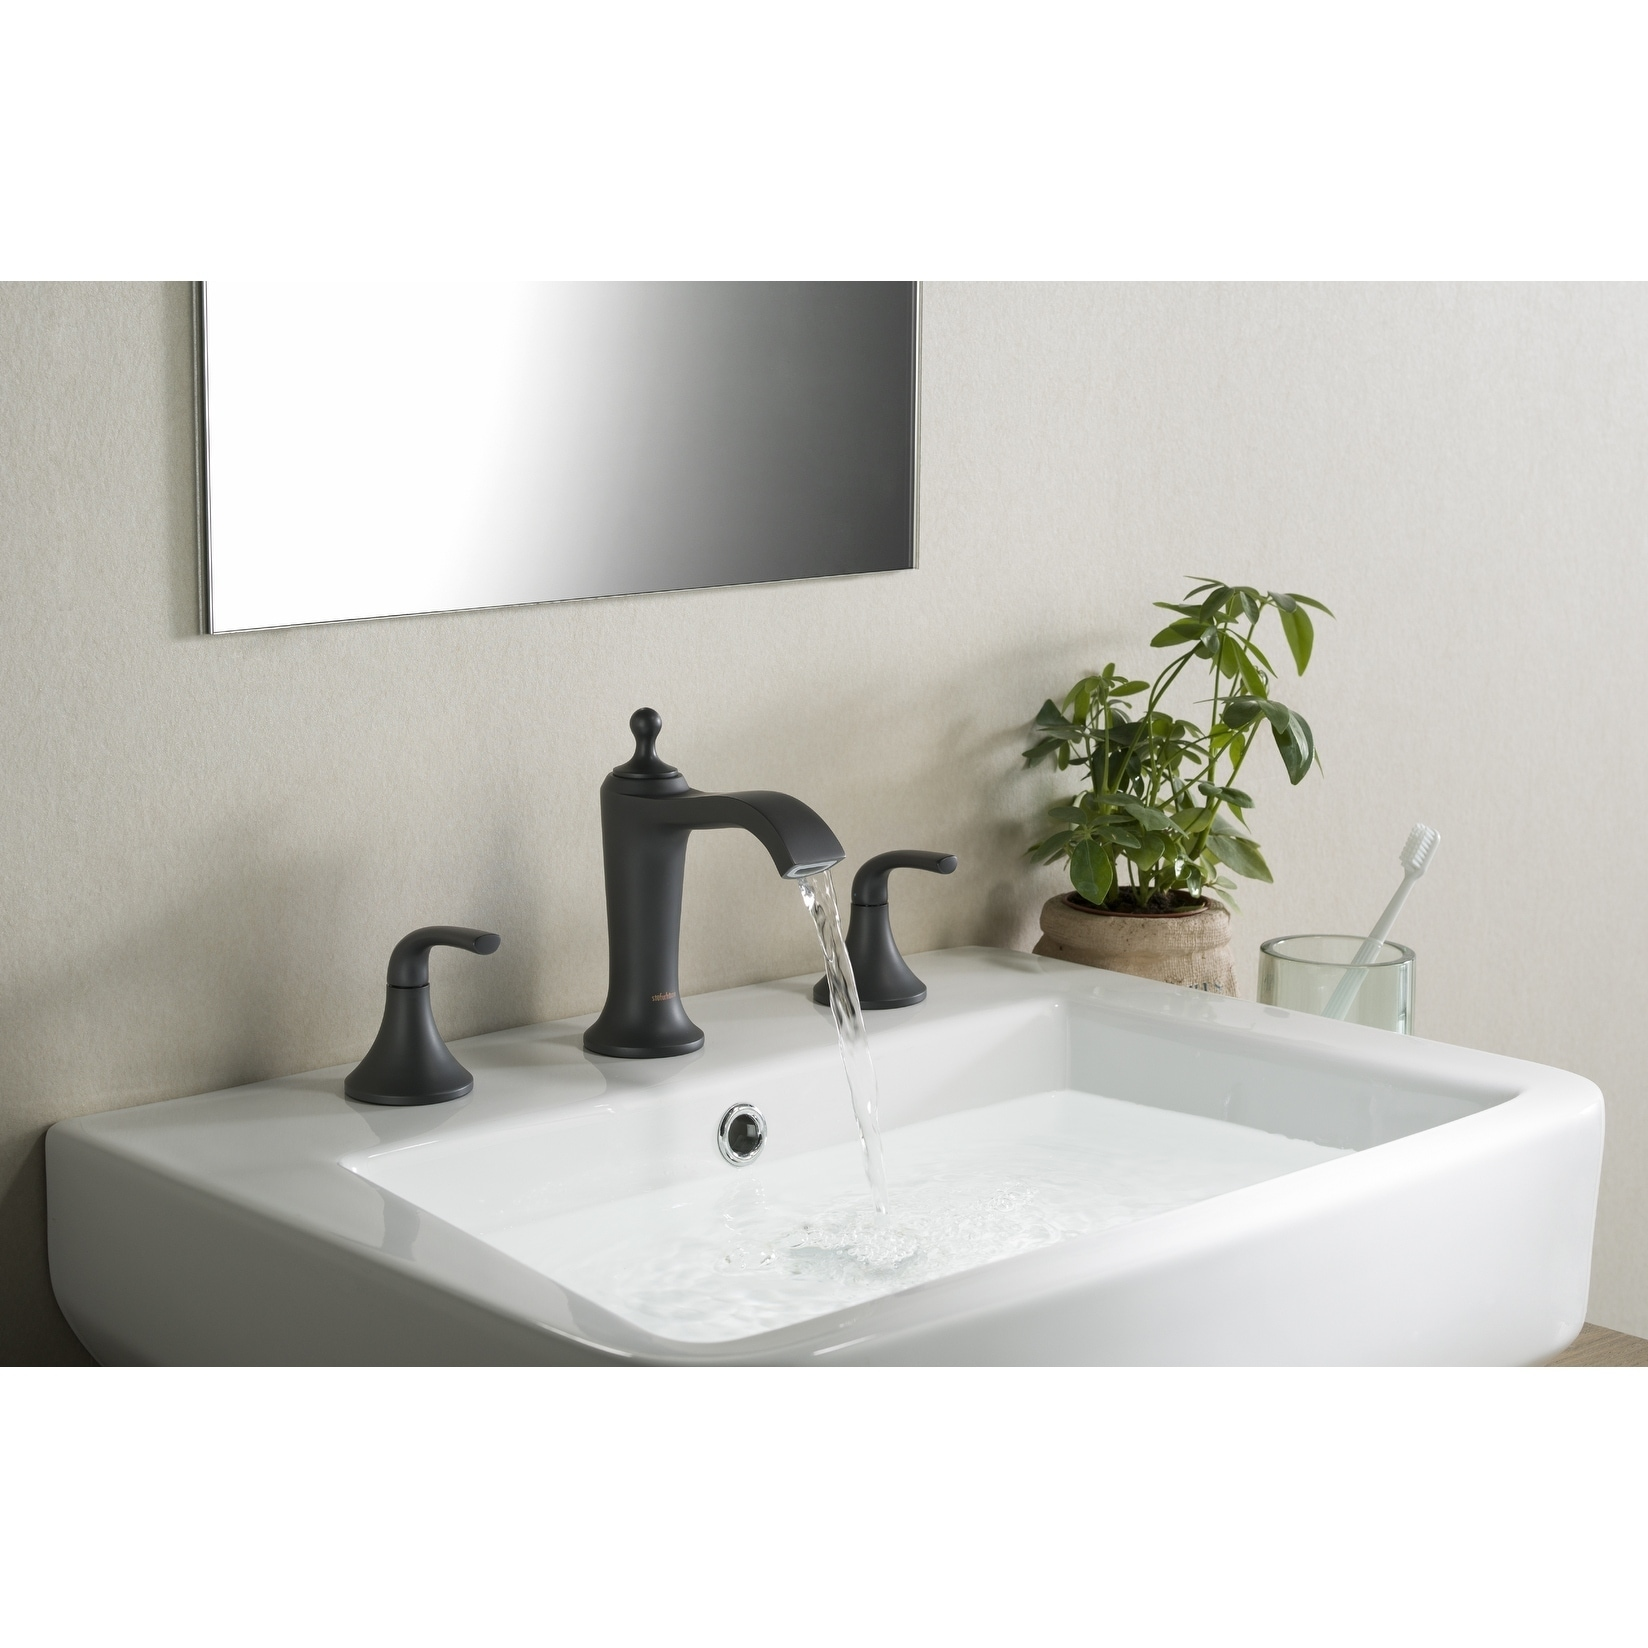 Stufurhome Brantley Chrome Bathroom Faucet Set in Matte Black - Free ...